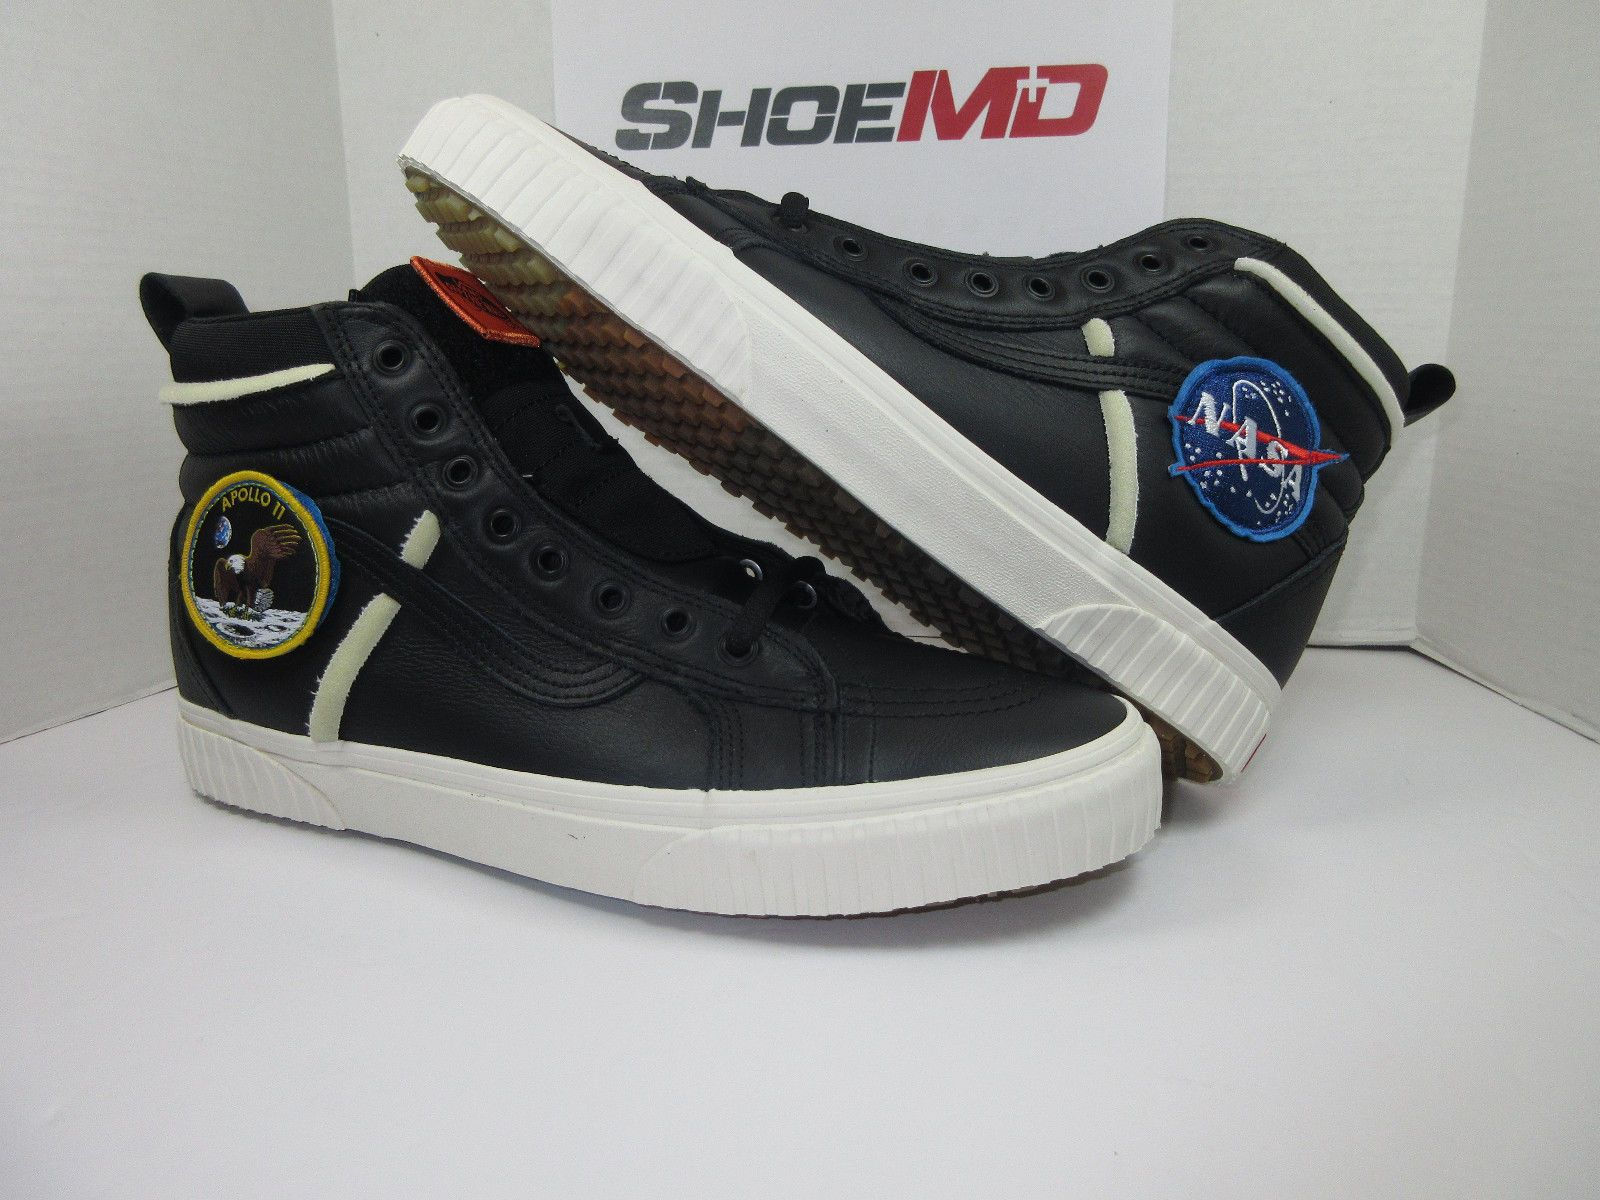 Vans Black Space Voyager Nasa Sneakers Sk8 hi 46 In Leather With Patch Apollo 11 for men